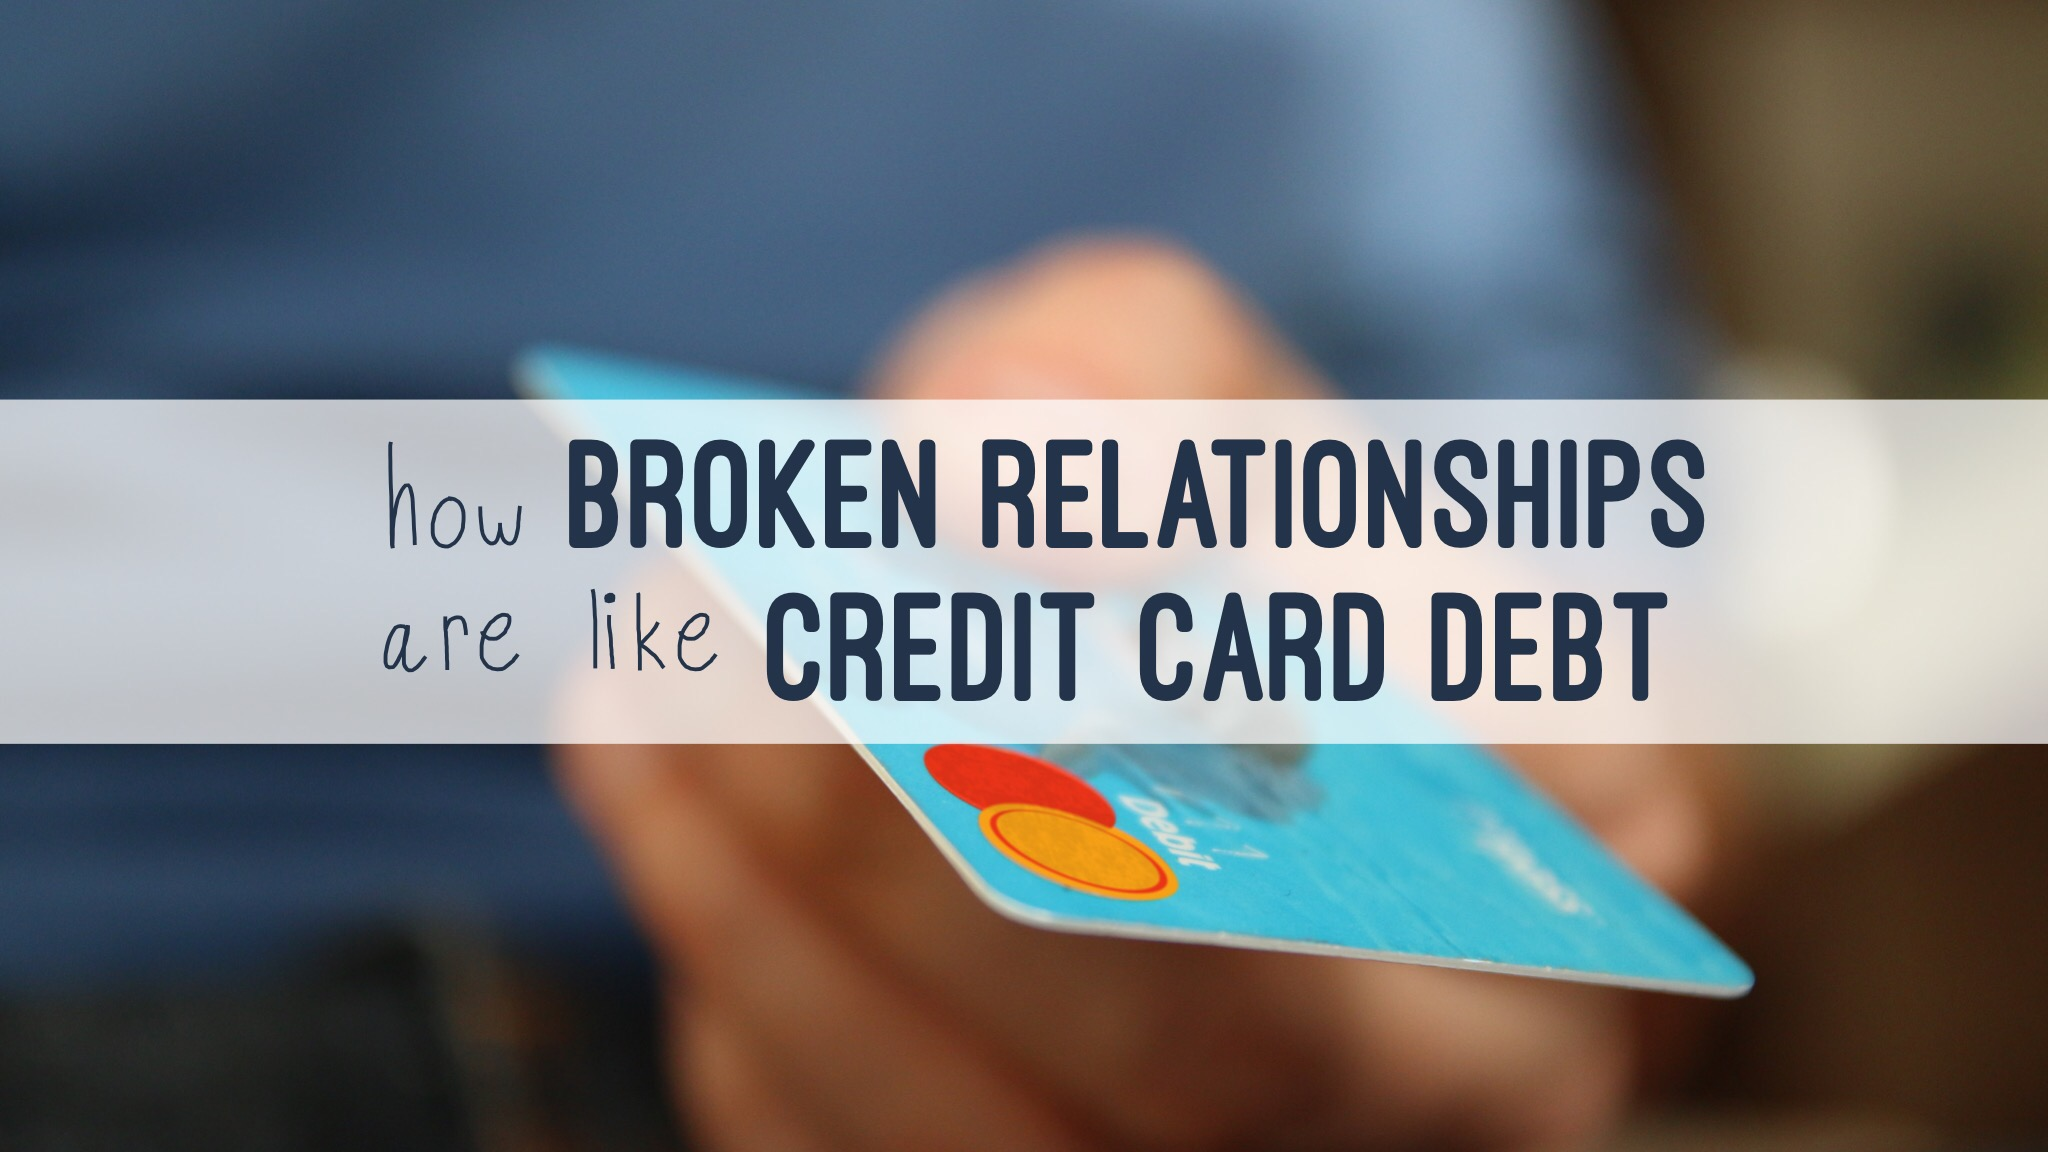 dating someone with credit card debt By 2017, credit card debt in america amounted to more than $1023 trillion this number is divided up among 126 million us households and accounts for 267% of total us consumer debt¹ people with credit card debts had average balances of $3,137 while the average household debt is just over $8,000² however, for households that carry debt, the average debt.